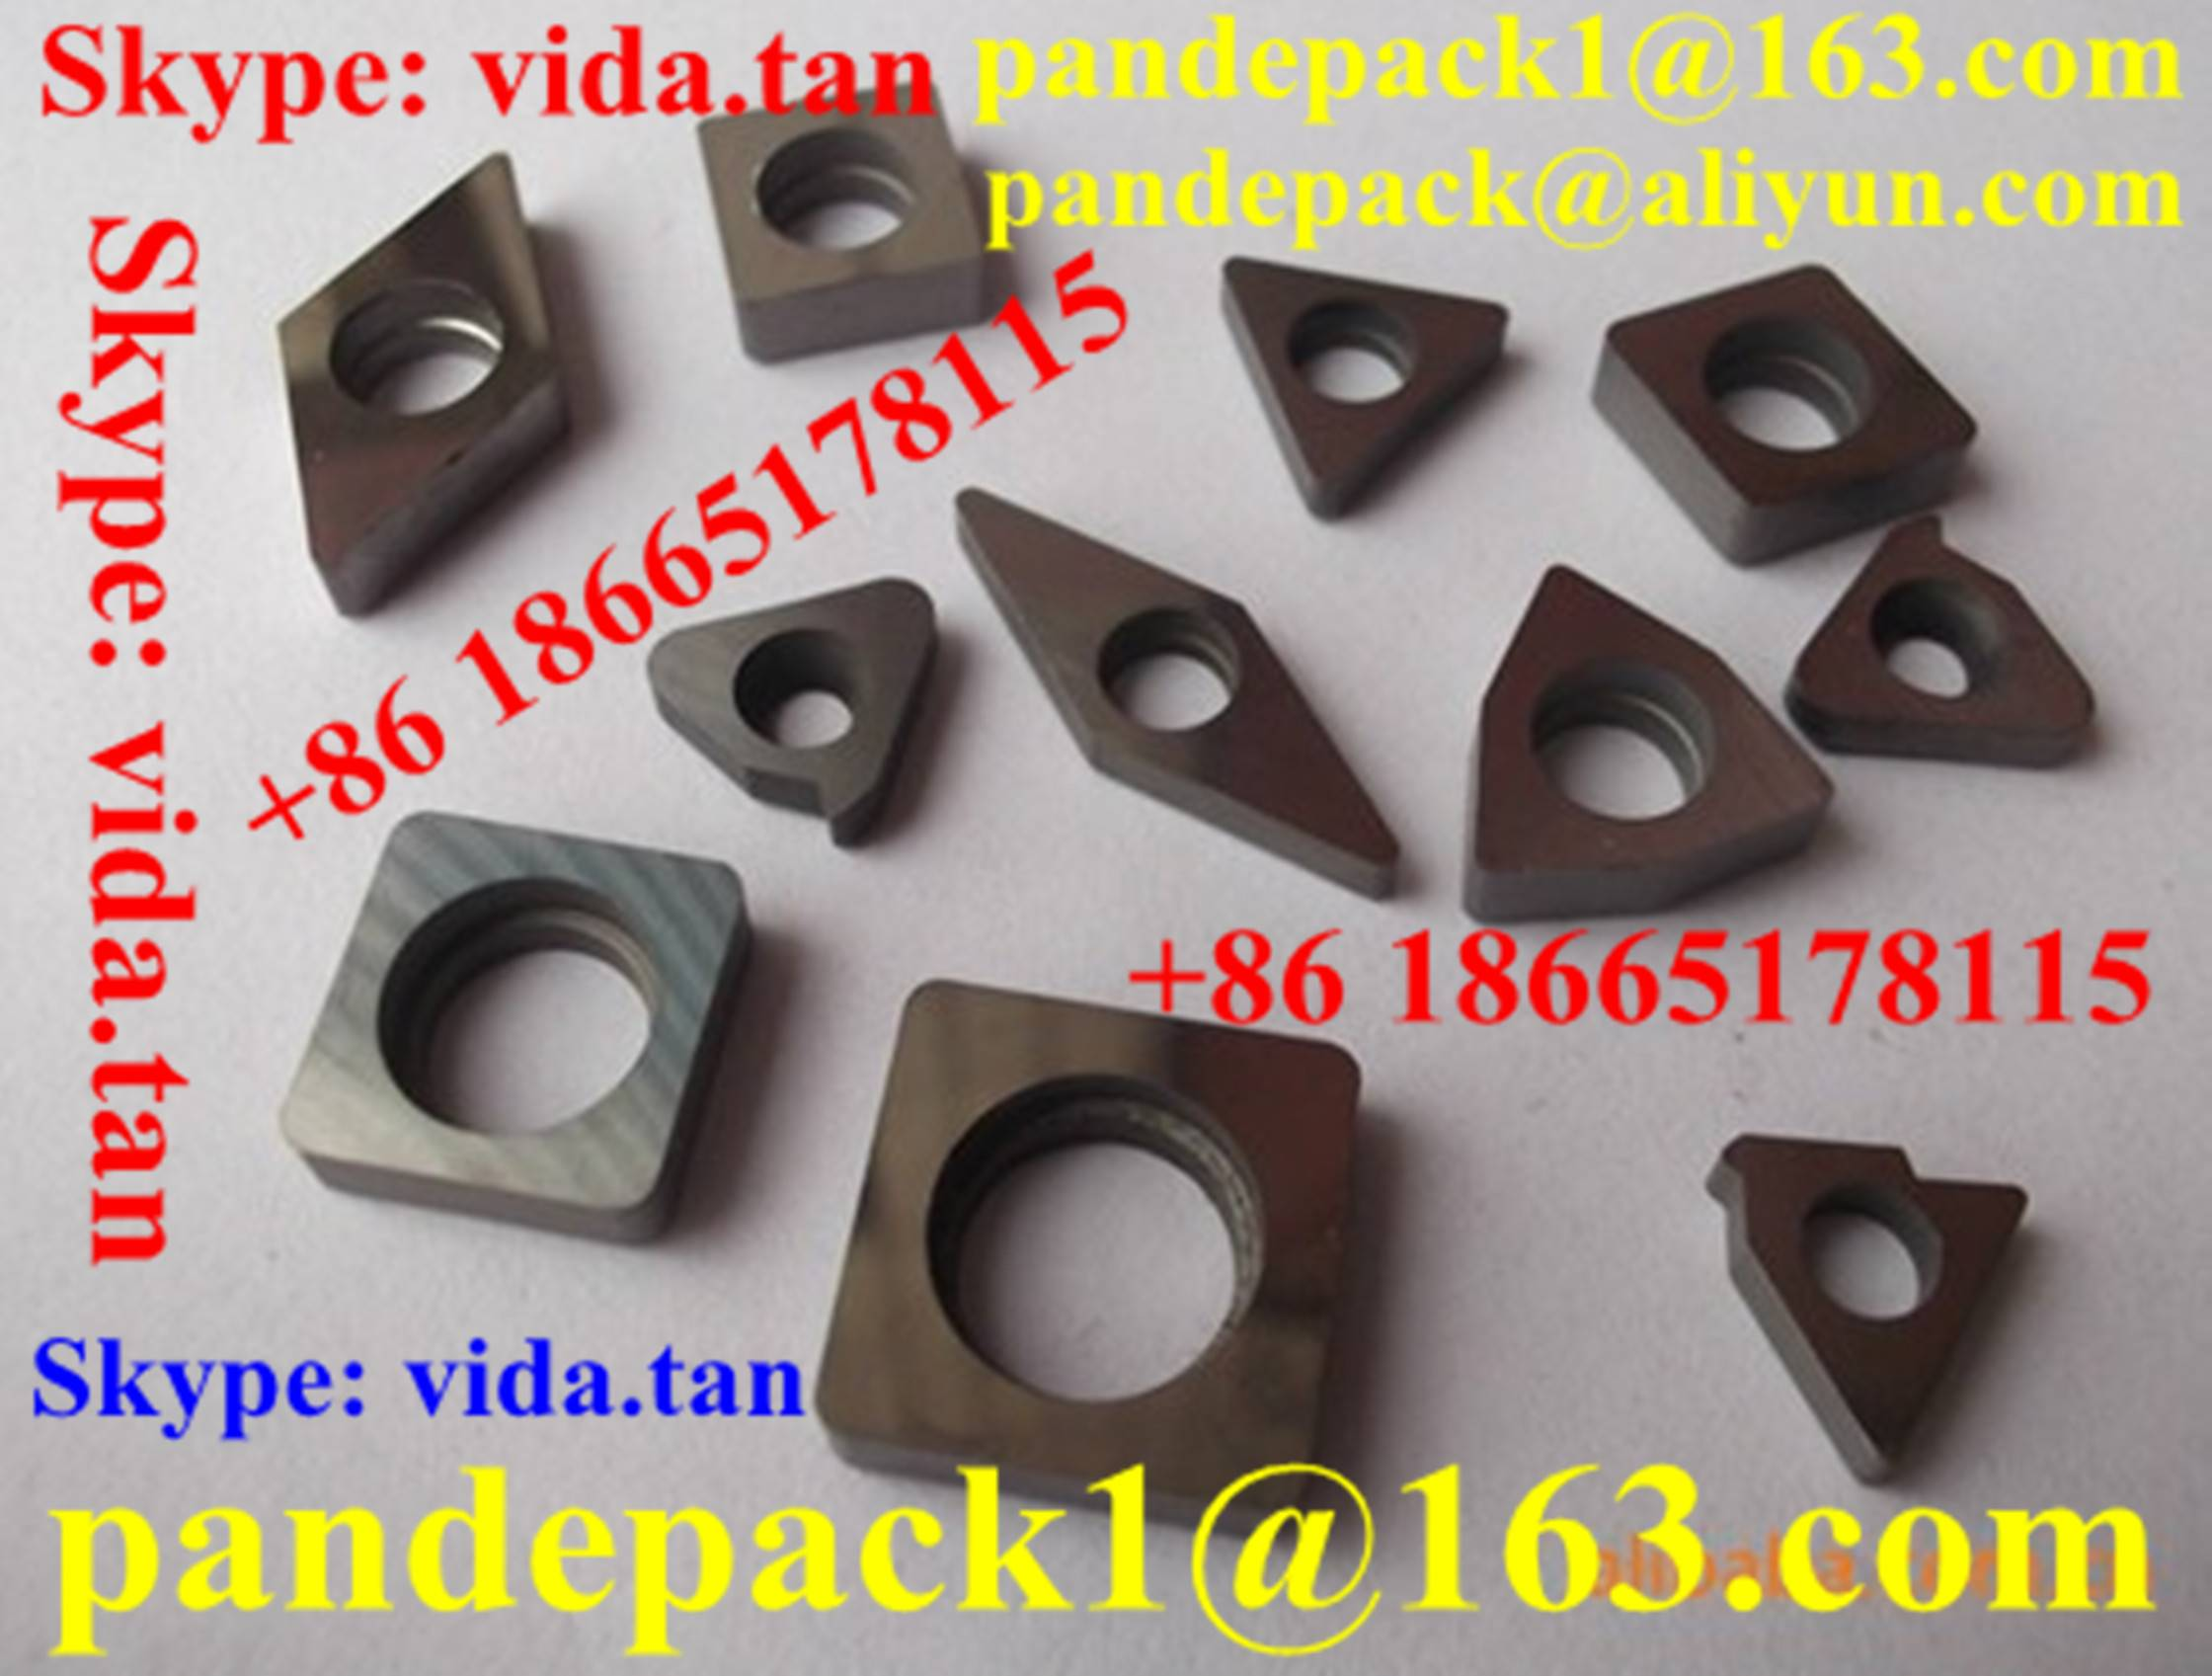 Alloy Insert Shim for CNC Lathe Tool/Blade Shim/CNC Lathe Tool Parts/Accessories/CNC Tool Parts/Tool